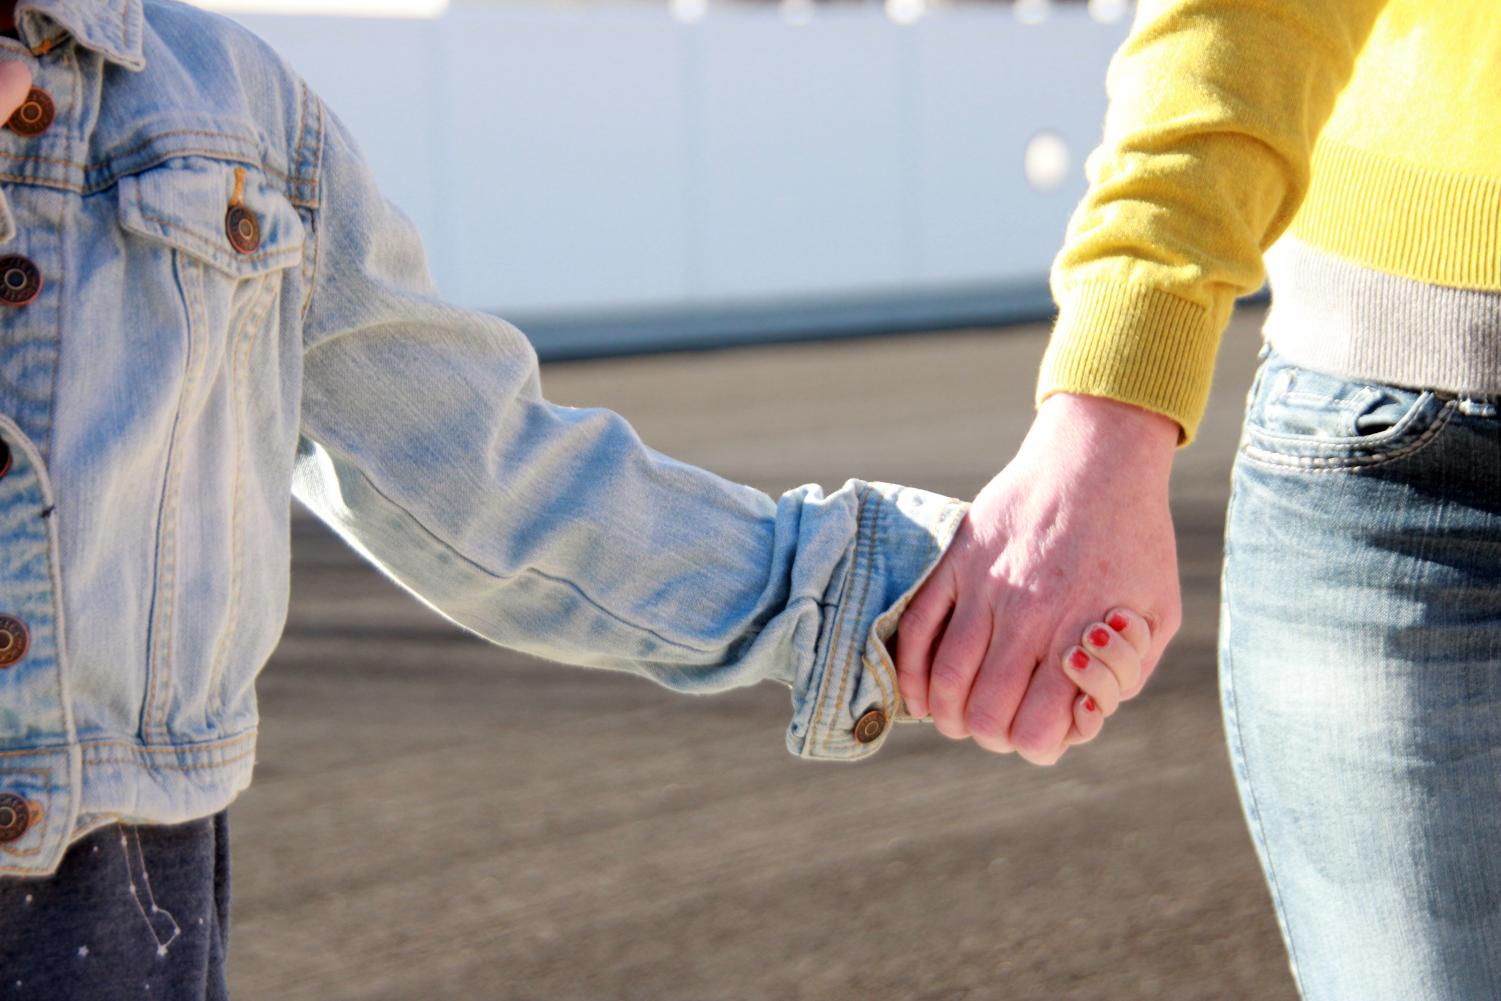 Making your child hug another adult goodbye may be affecting them negatively.